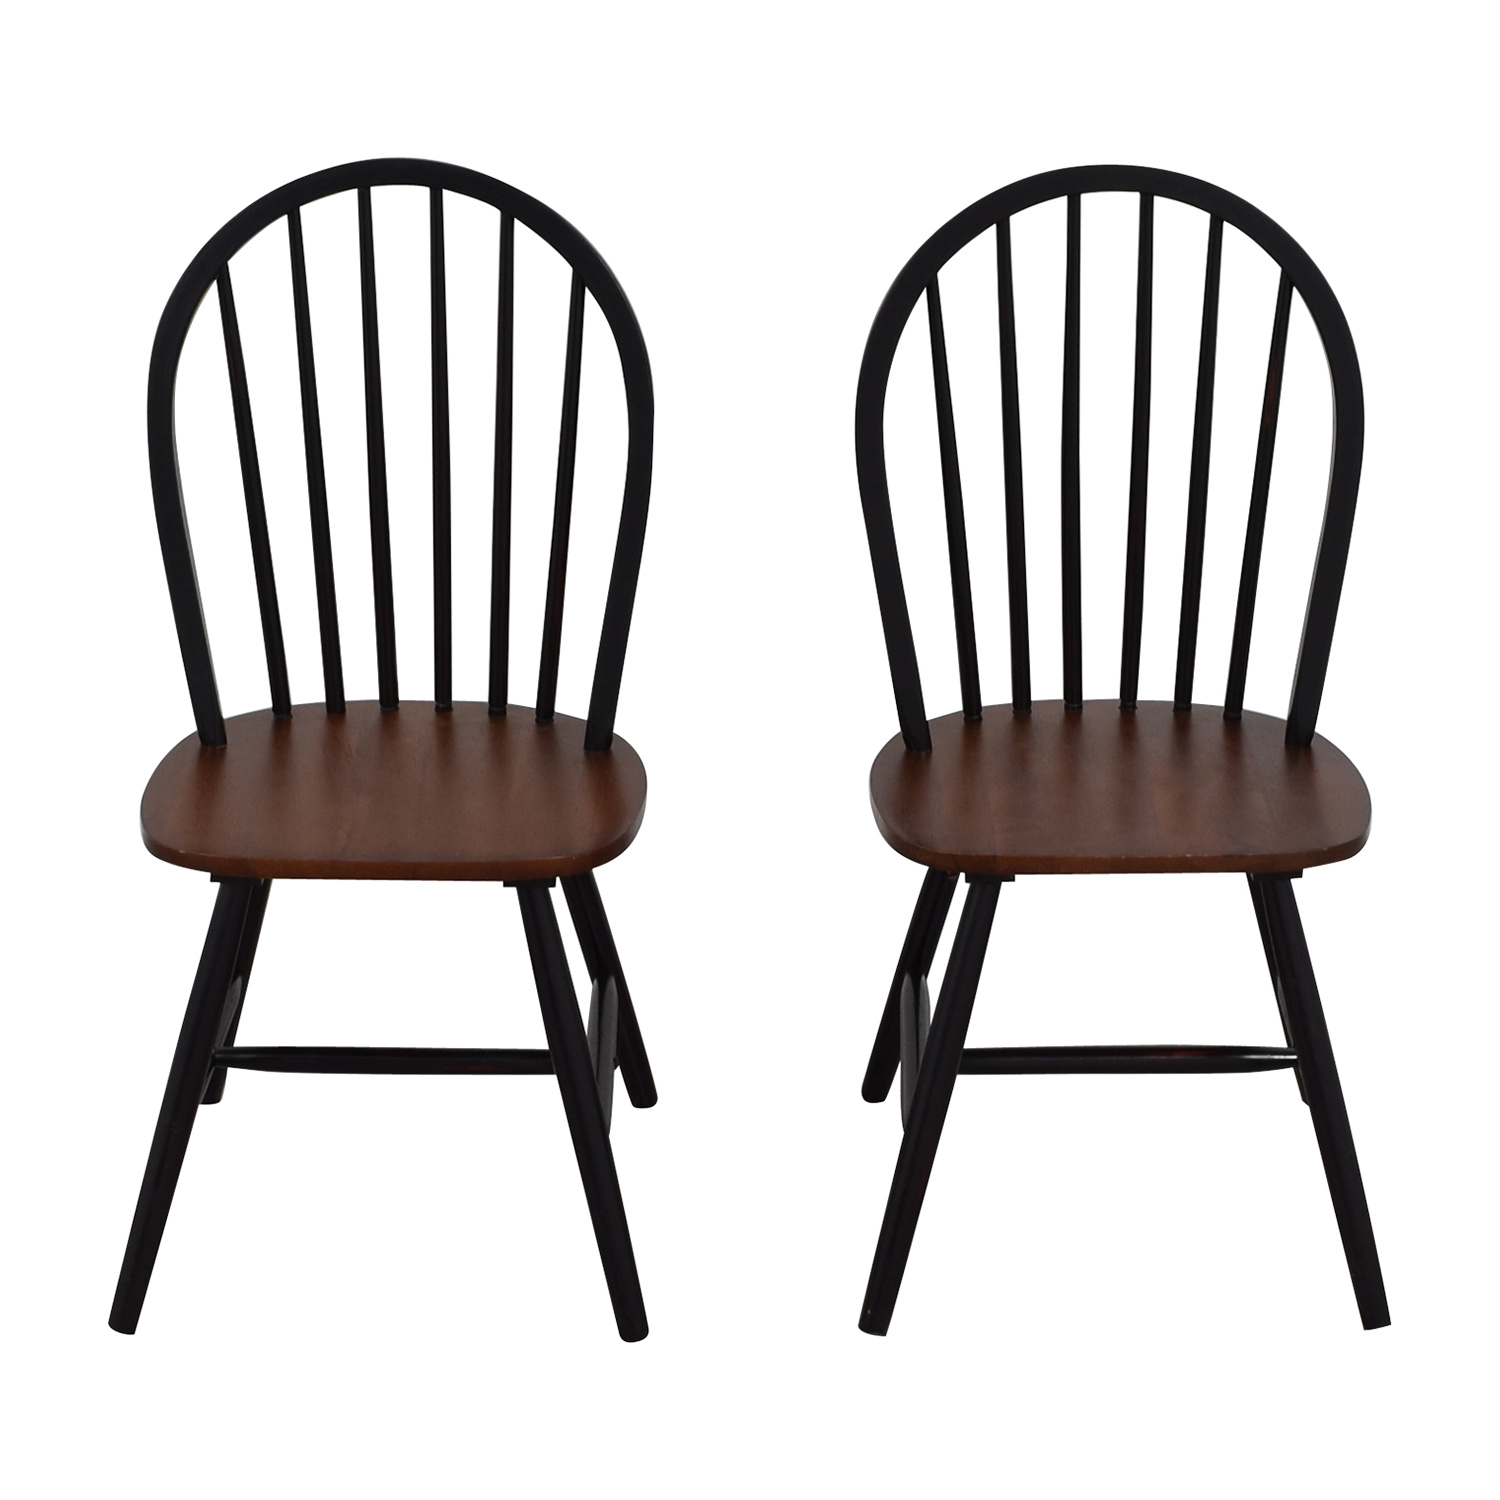 Two-Tone Wood Dining Chairs price